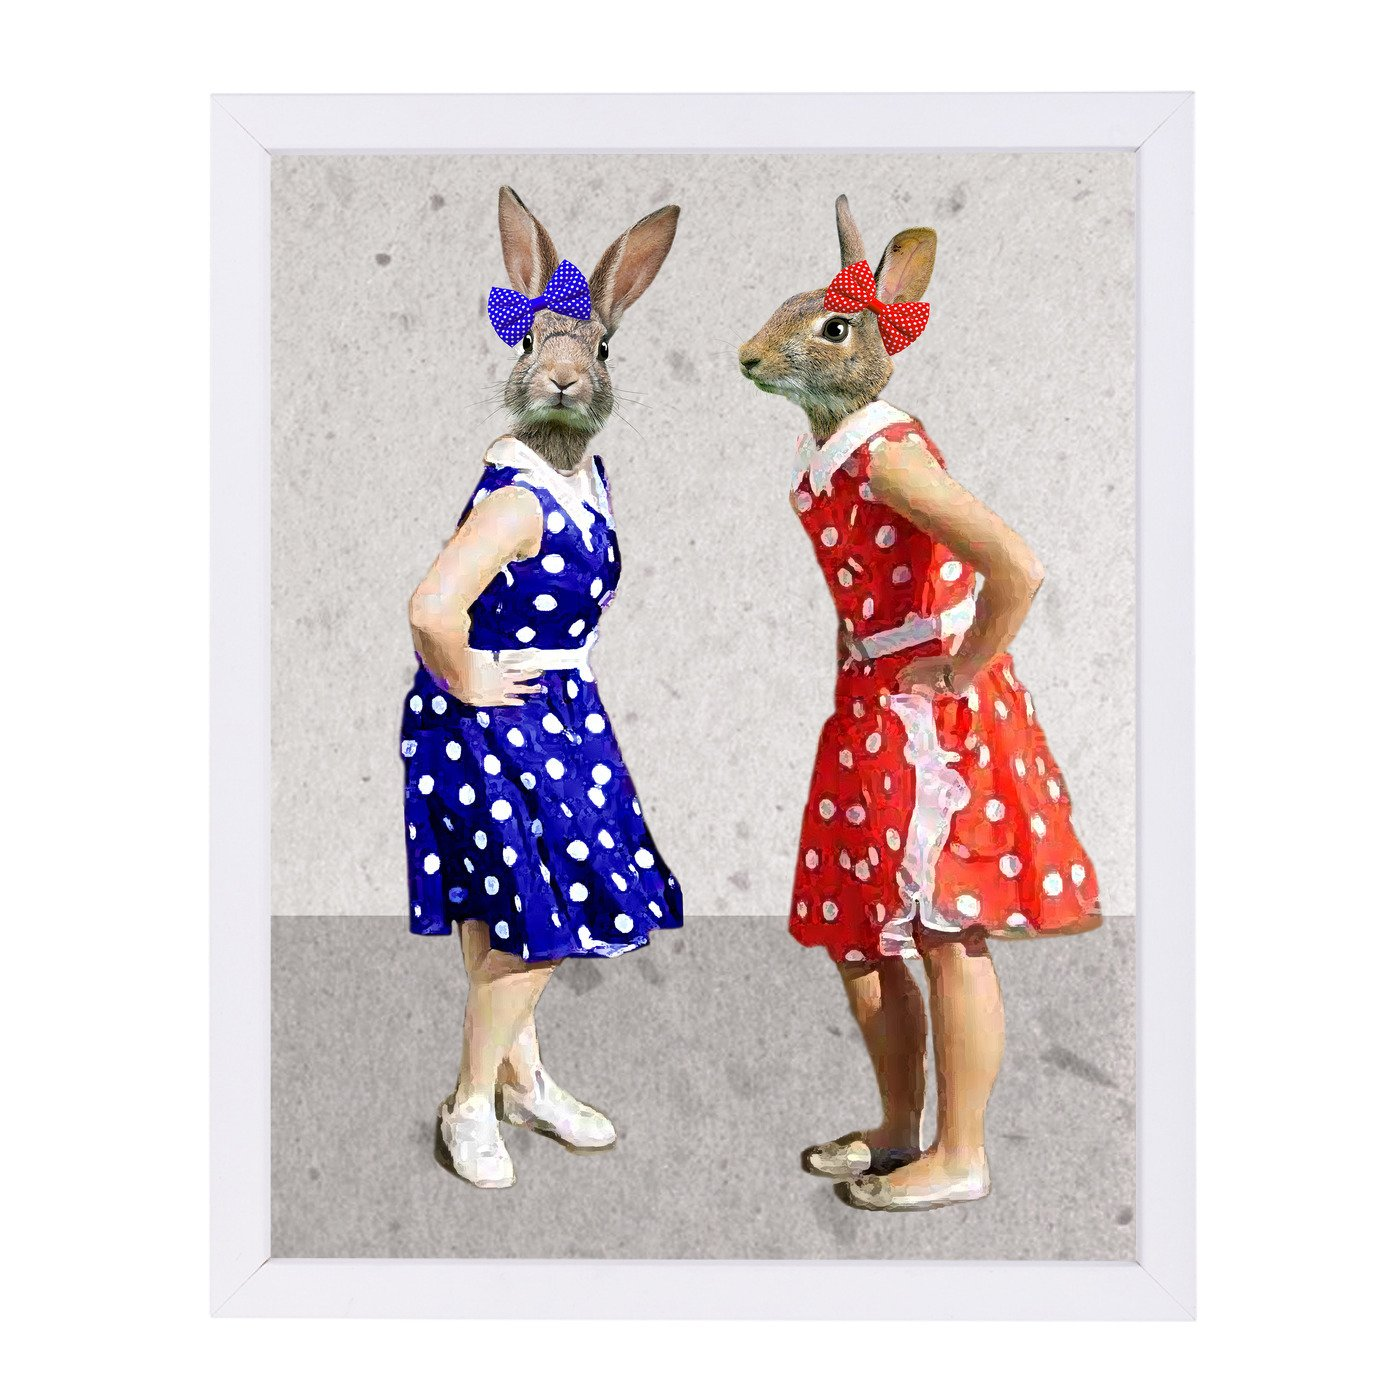 Rabbits Rock & Roll By Coco De Paris - Framed Print - Americanflat